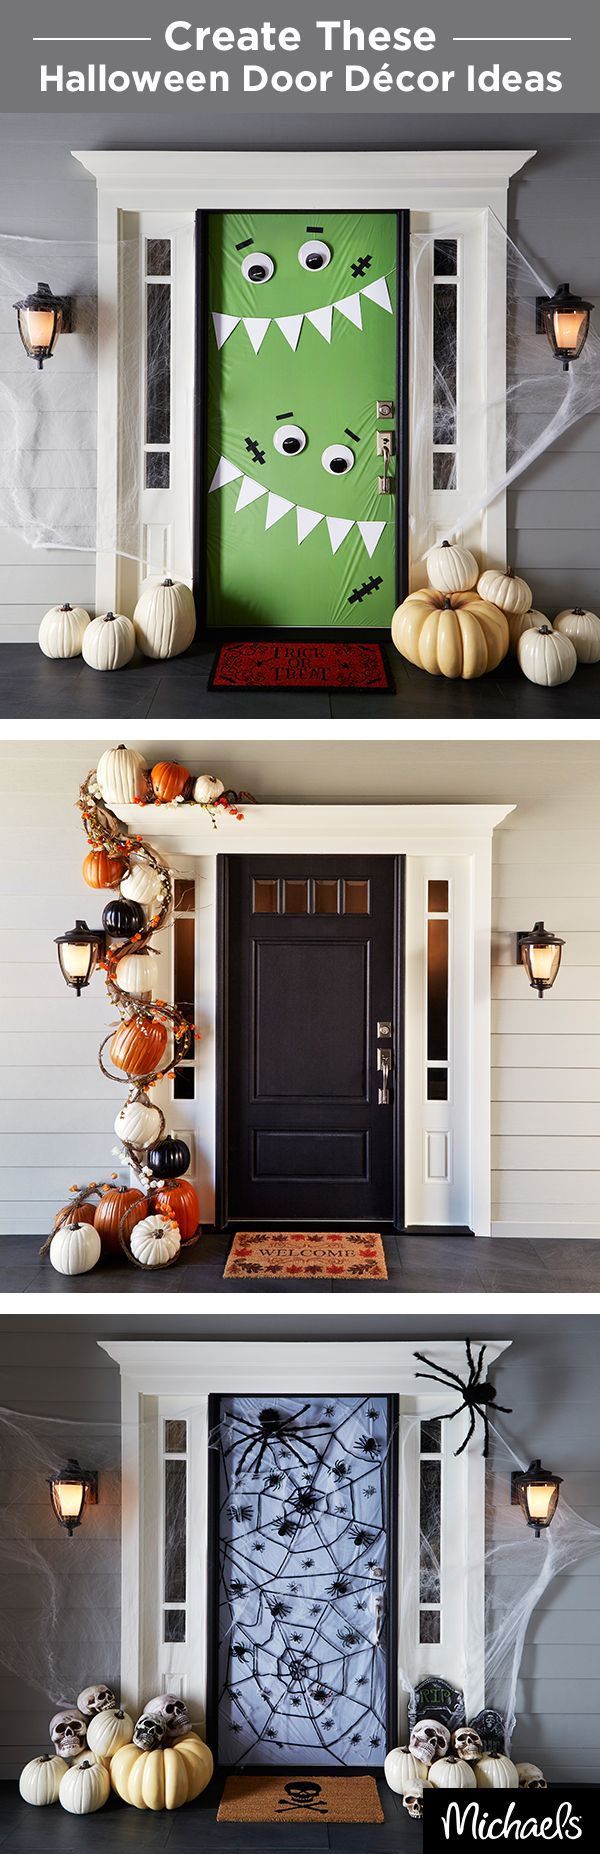 decorate your front door for trick or treaters this halloween these 3 door dcor ideas - Michaels Halloween